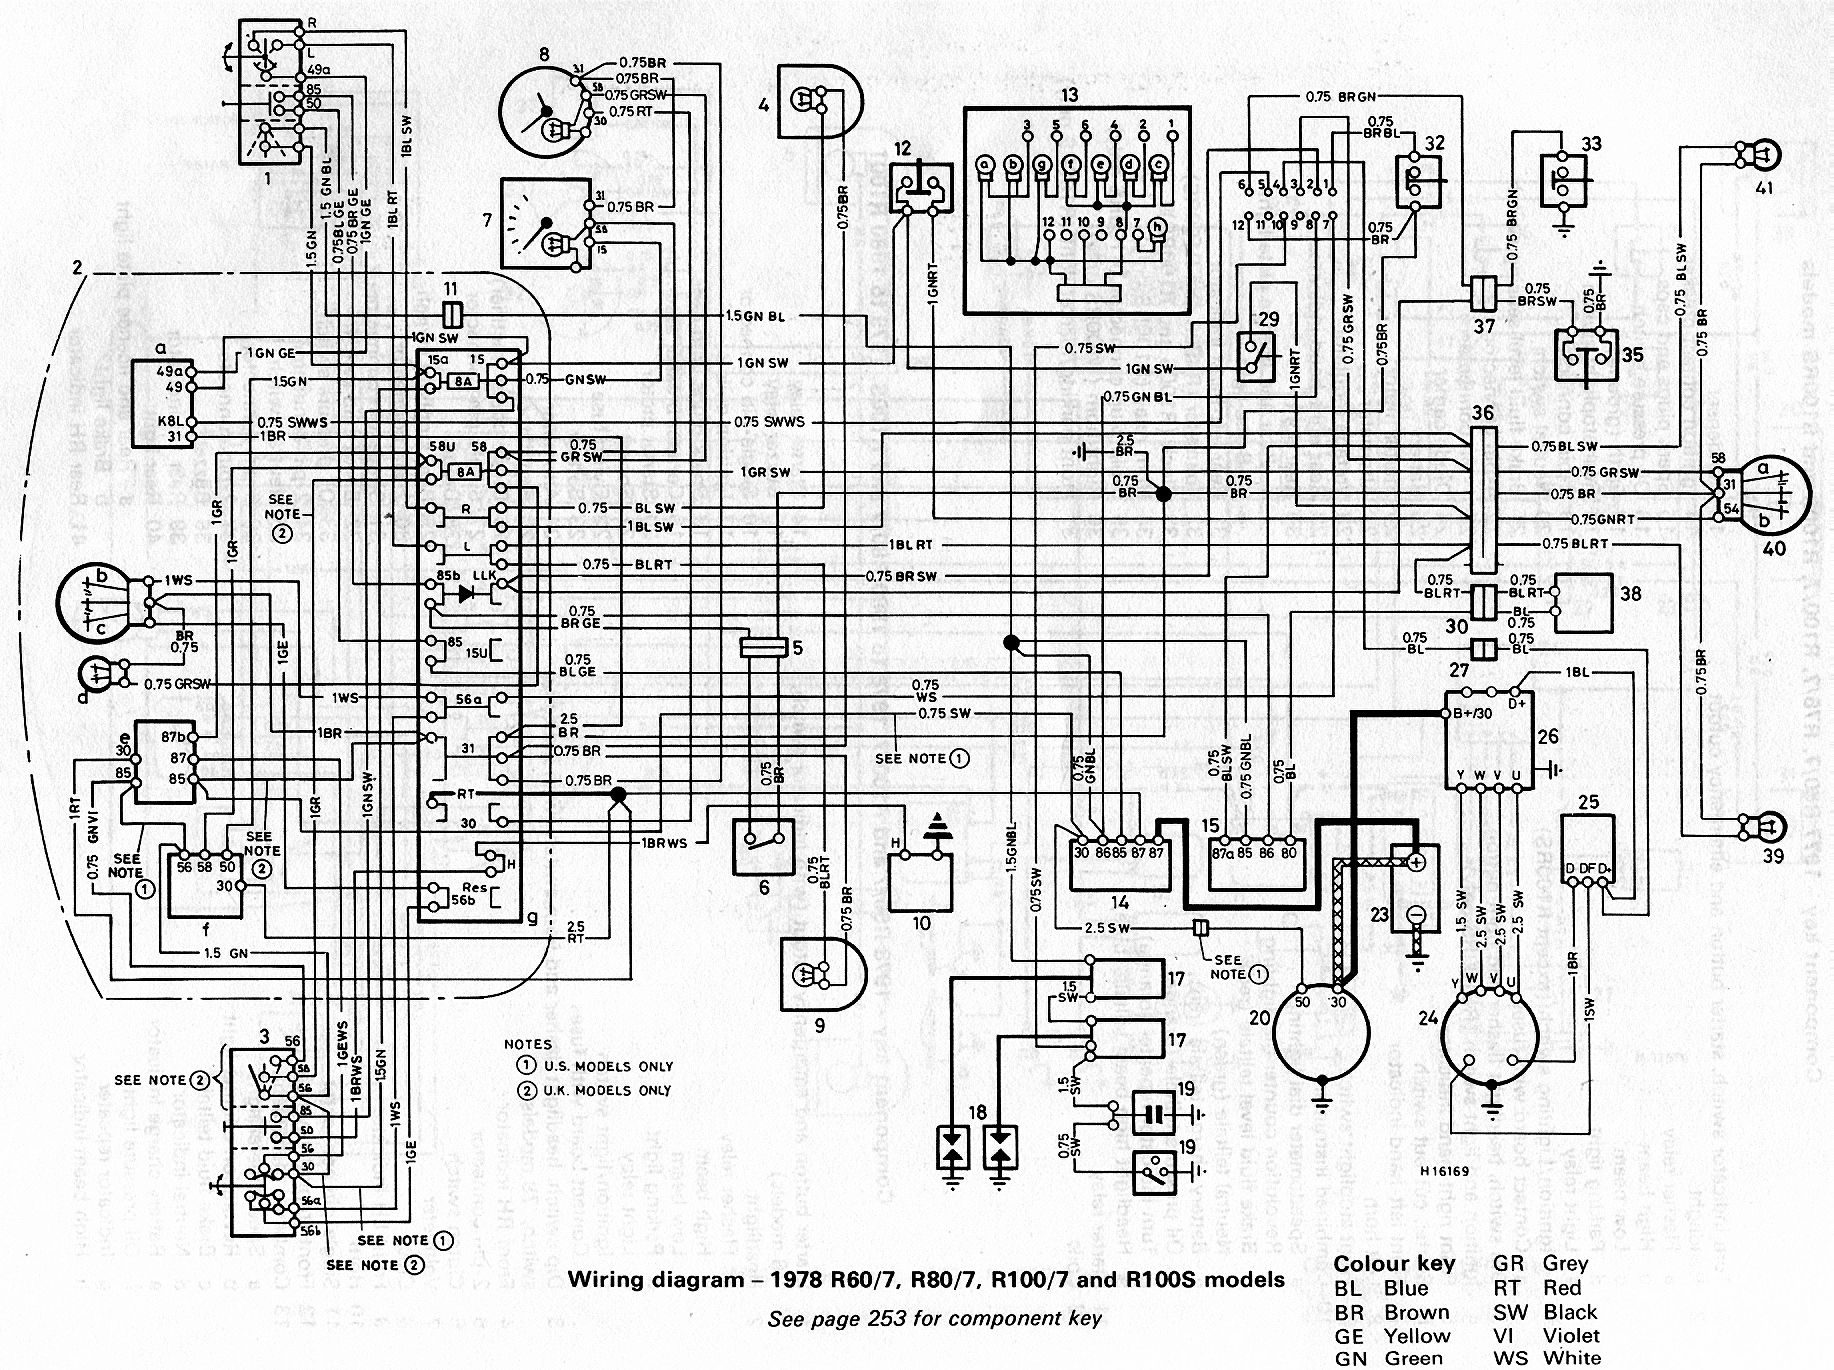 DIAGRAM] 1976 Chevette Wiring Diagrams FULL Version HD Quality Wiring  Diagrams - VIRTUALWIRINGCLOSET.LITTLETEO.FRDiagram Database - LITTLETEO